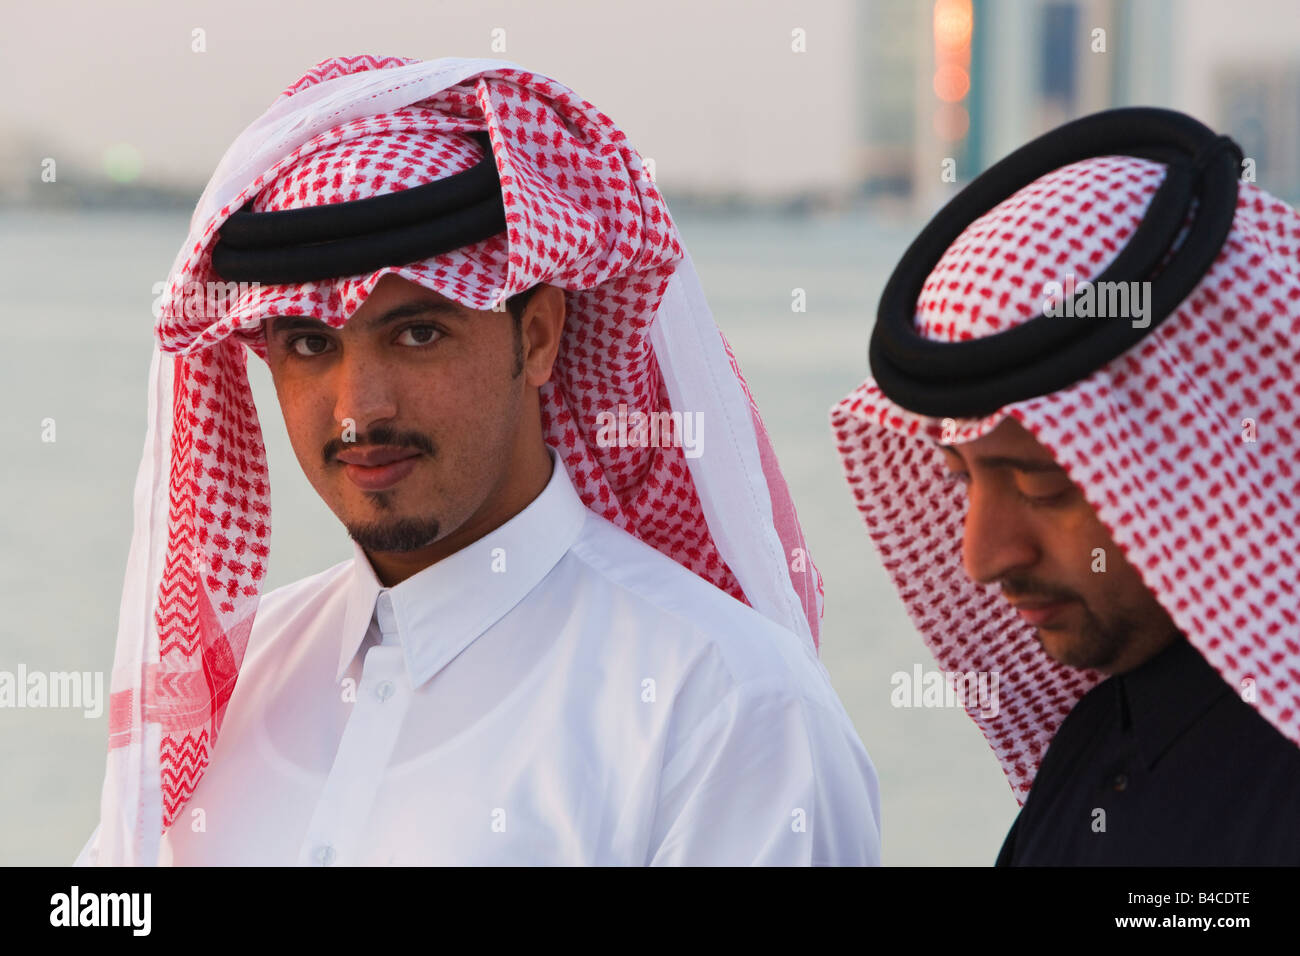 Qatar, Middle East, Arabian Peninsula, Doha, two men wearing traditional dress of thobe floor length shirt dress - Stock Image